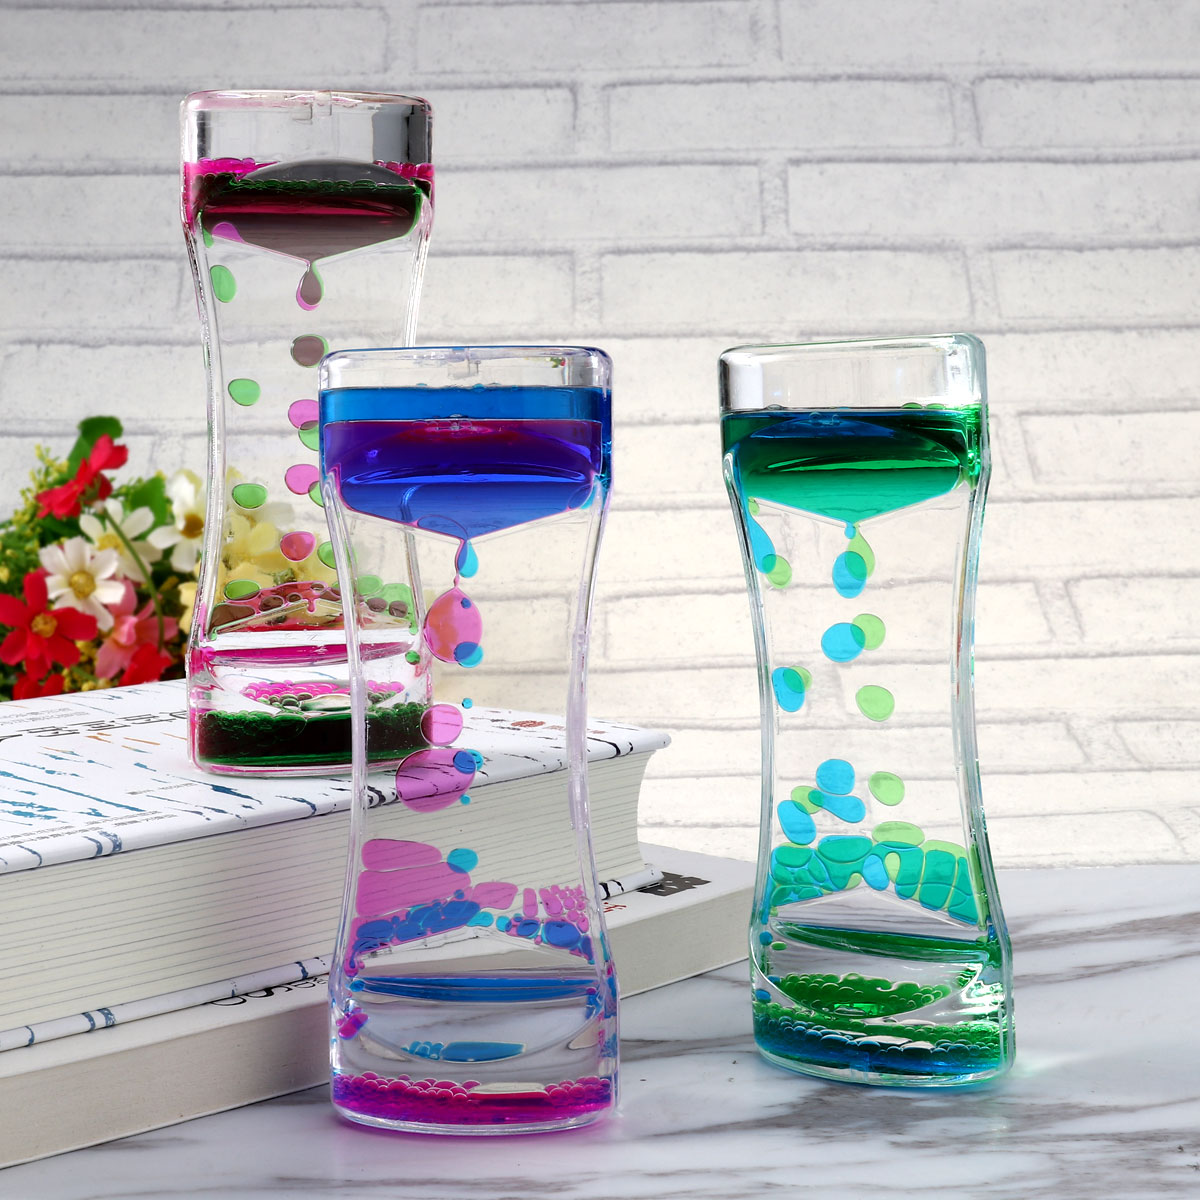 Clocks Official Website Bestomz 3pcs Double Colors Oil Hourglass Liquid Motion Bubble Timer With Pretty Waist Desk Decor Birthday Gift Children Toy